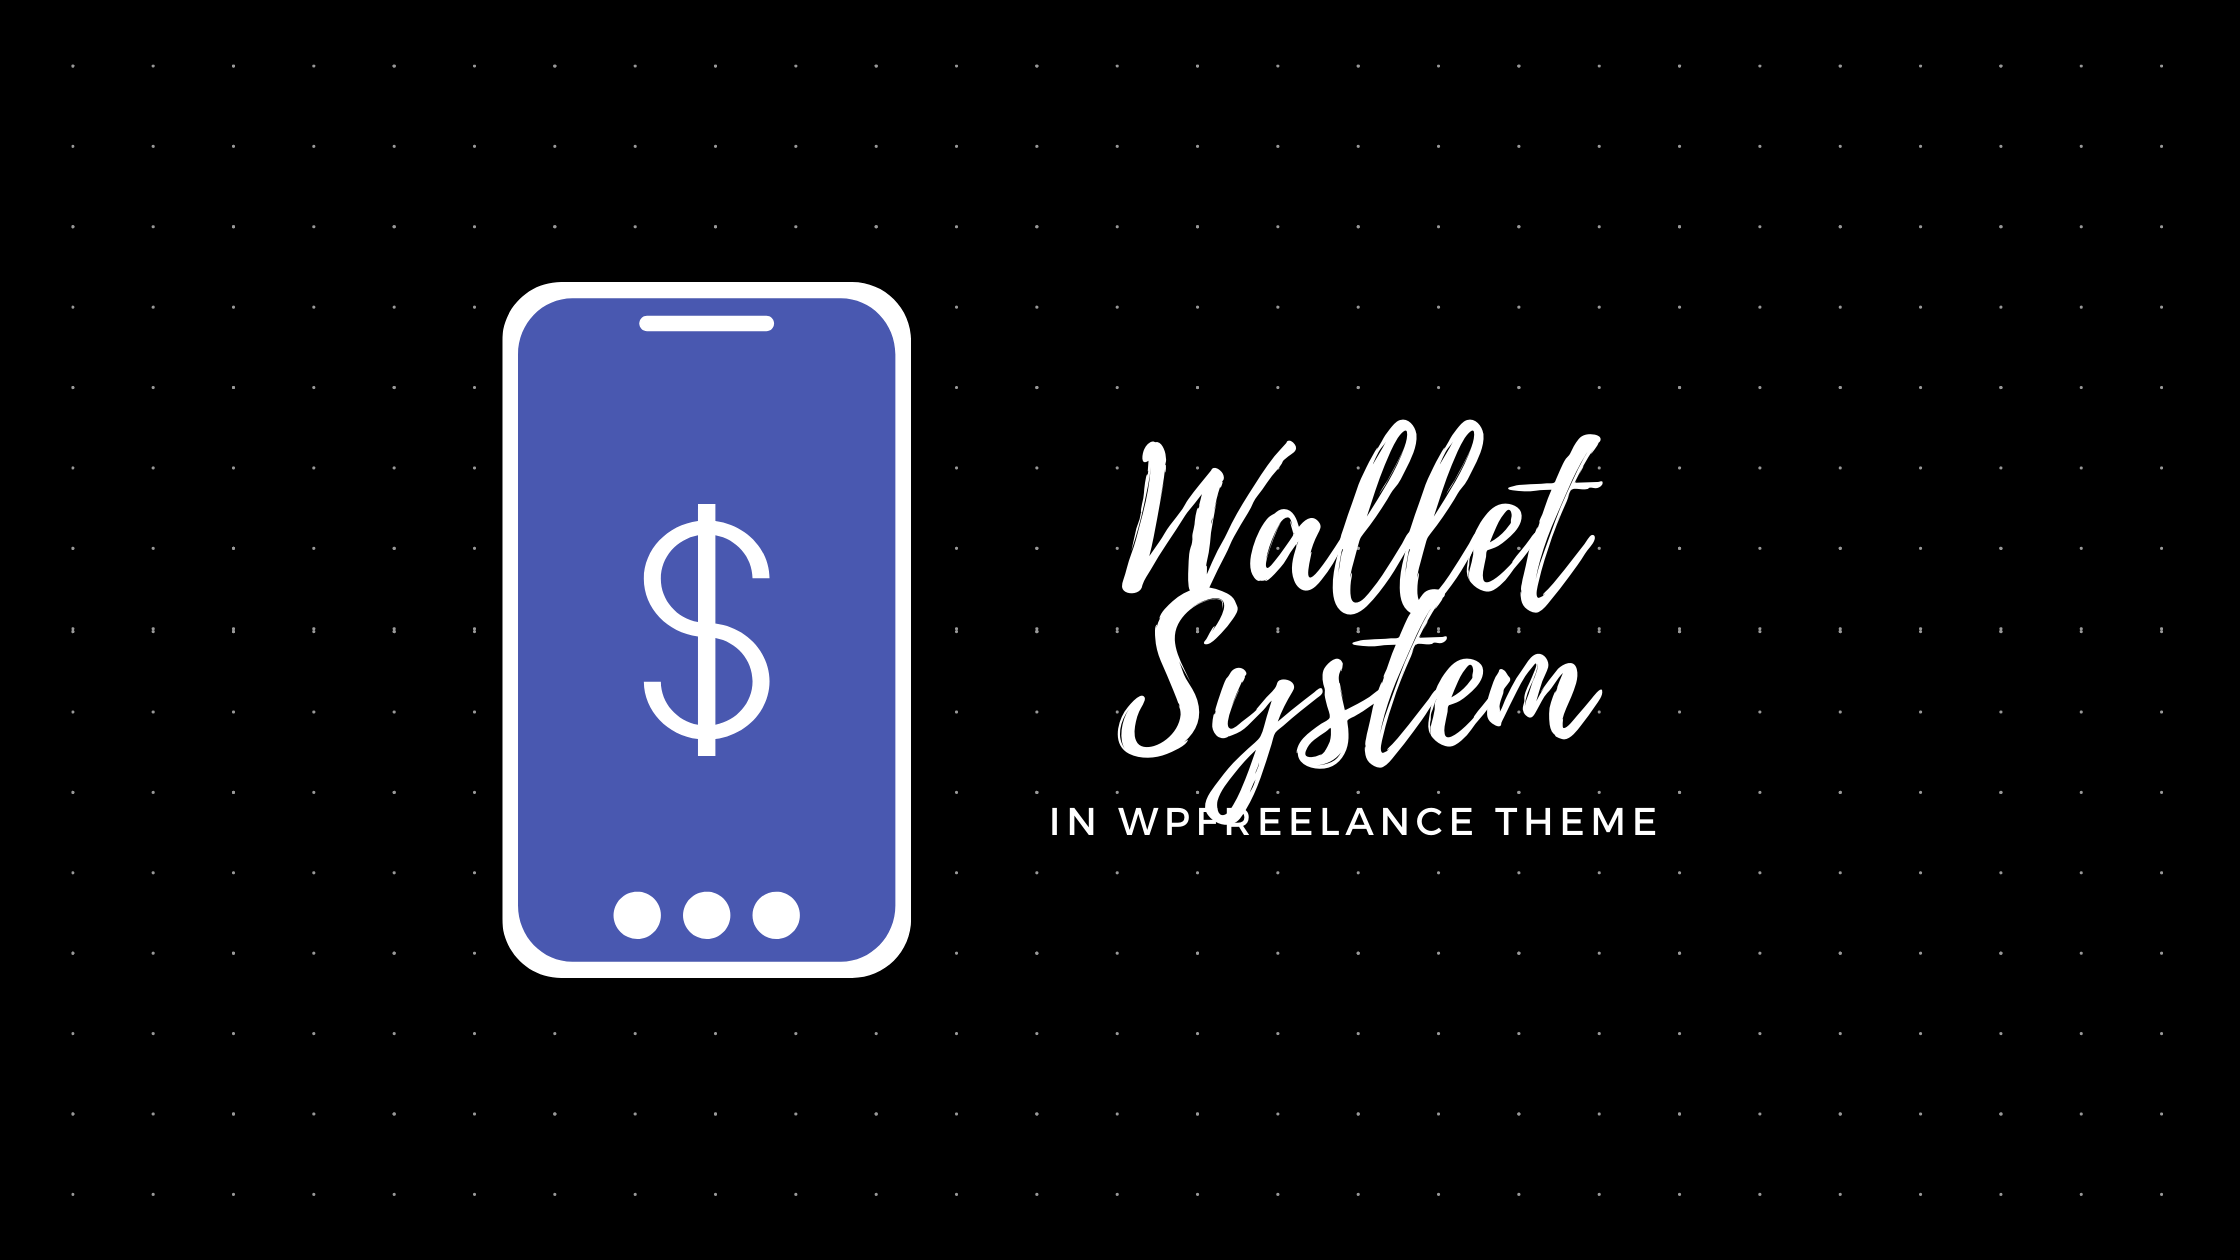 Wallet system in WPFreelance Theme - featured image